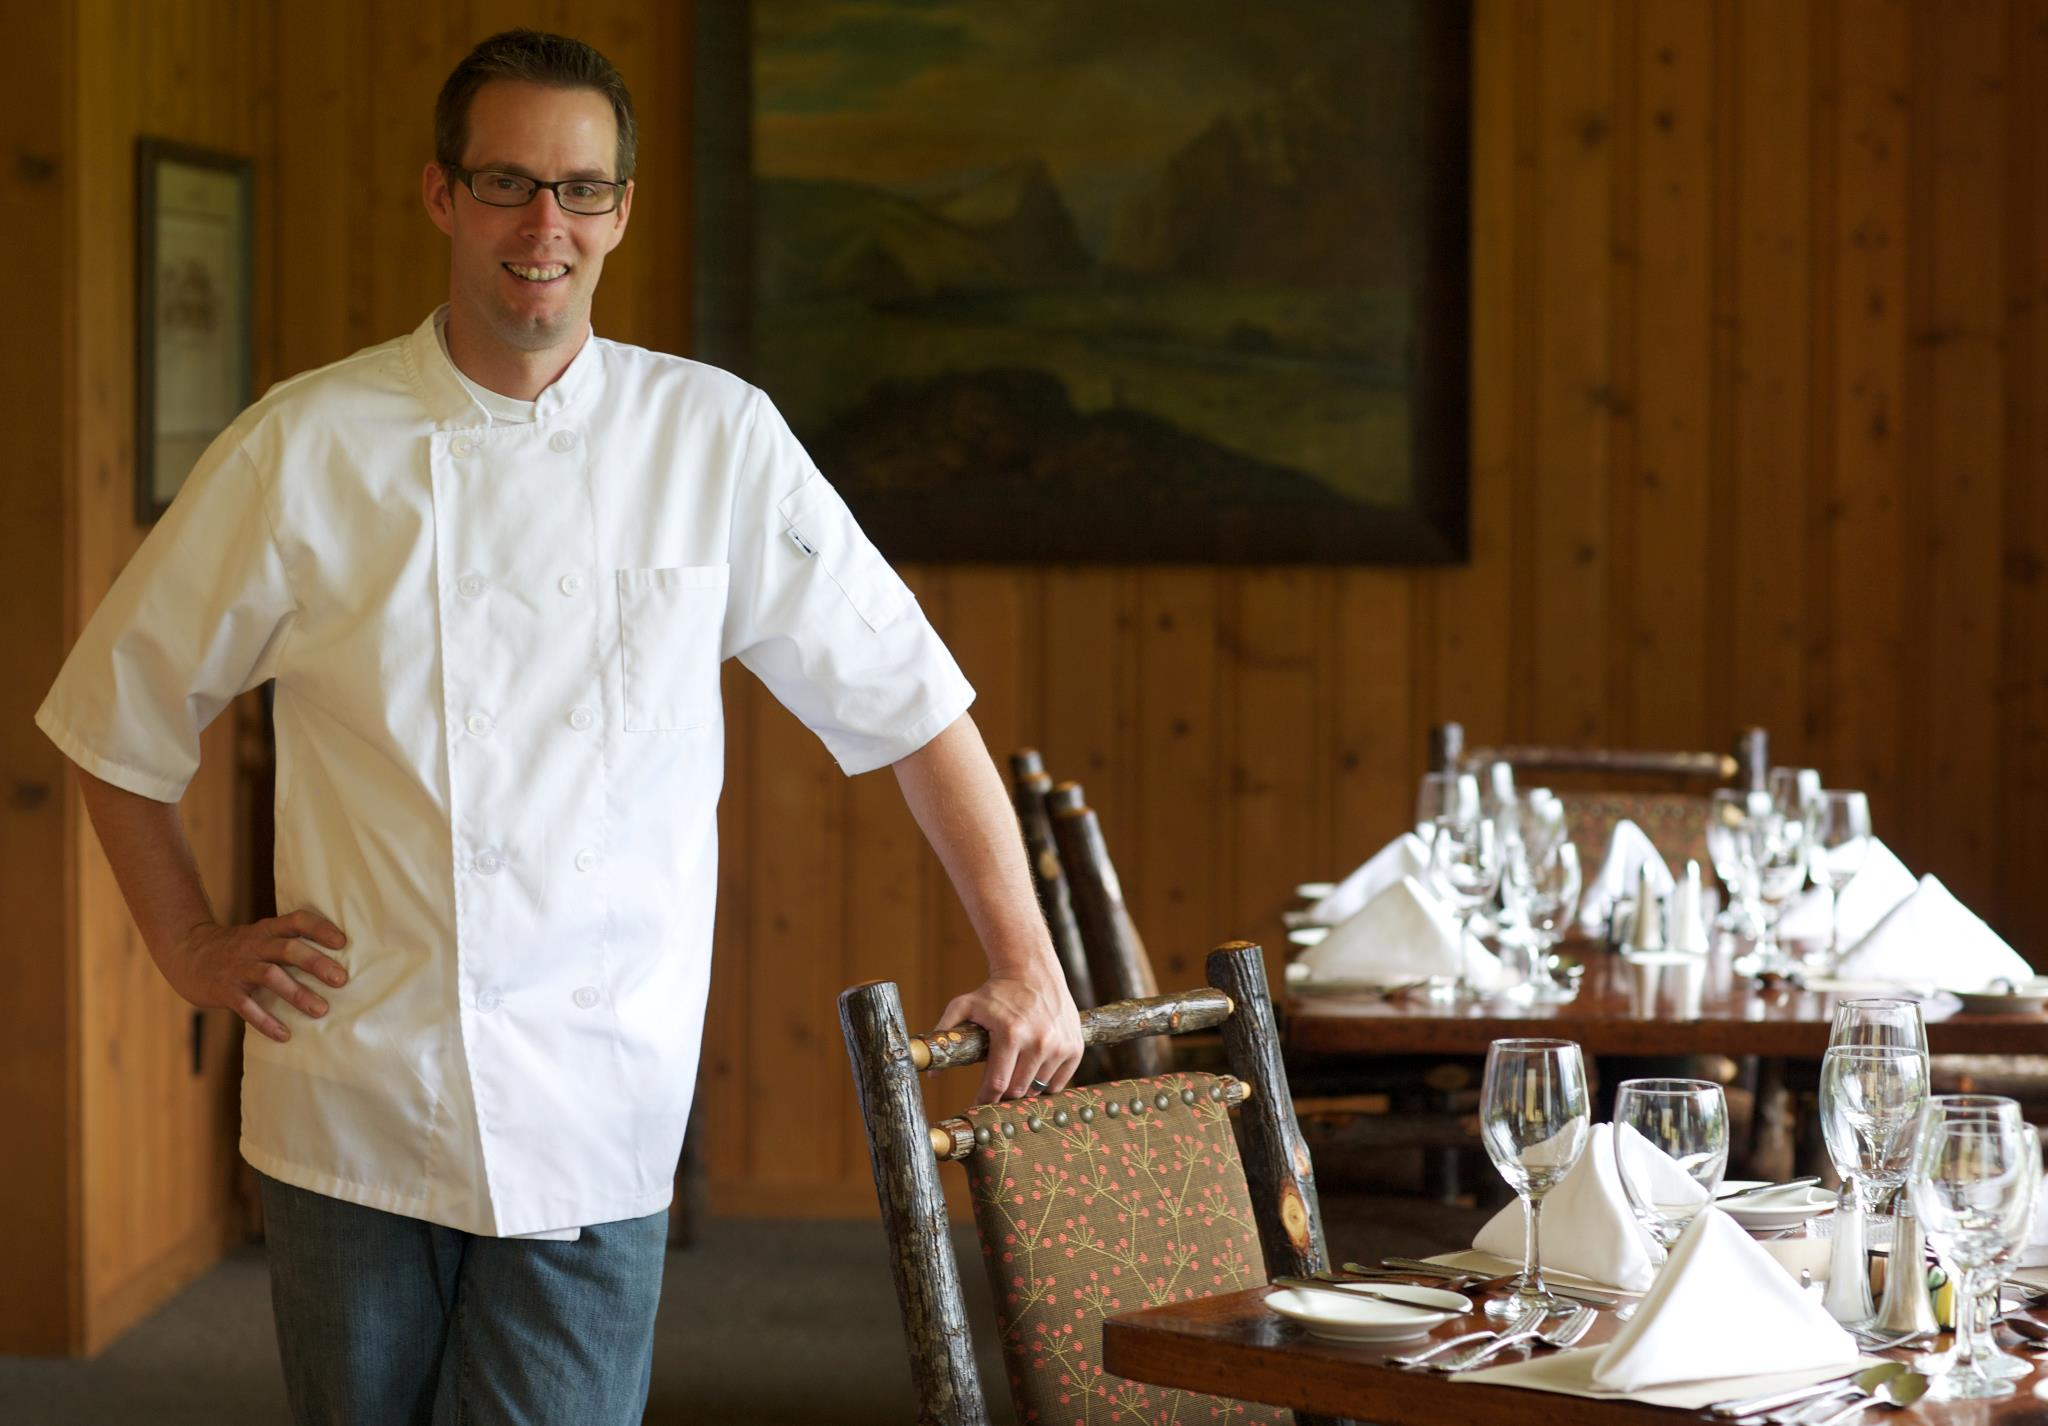 4UR Ranch's Executive Chef Wray Warner